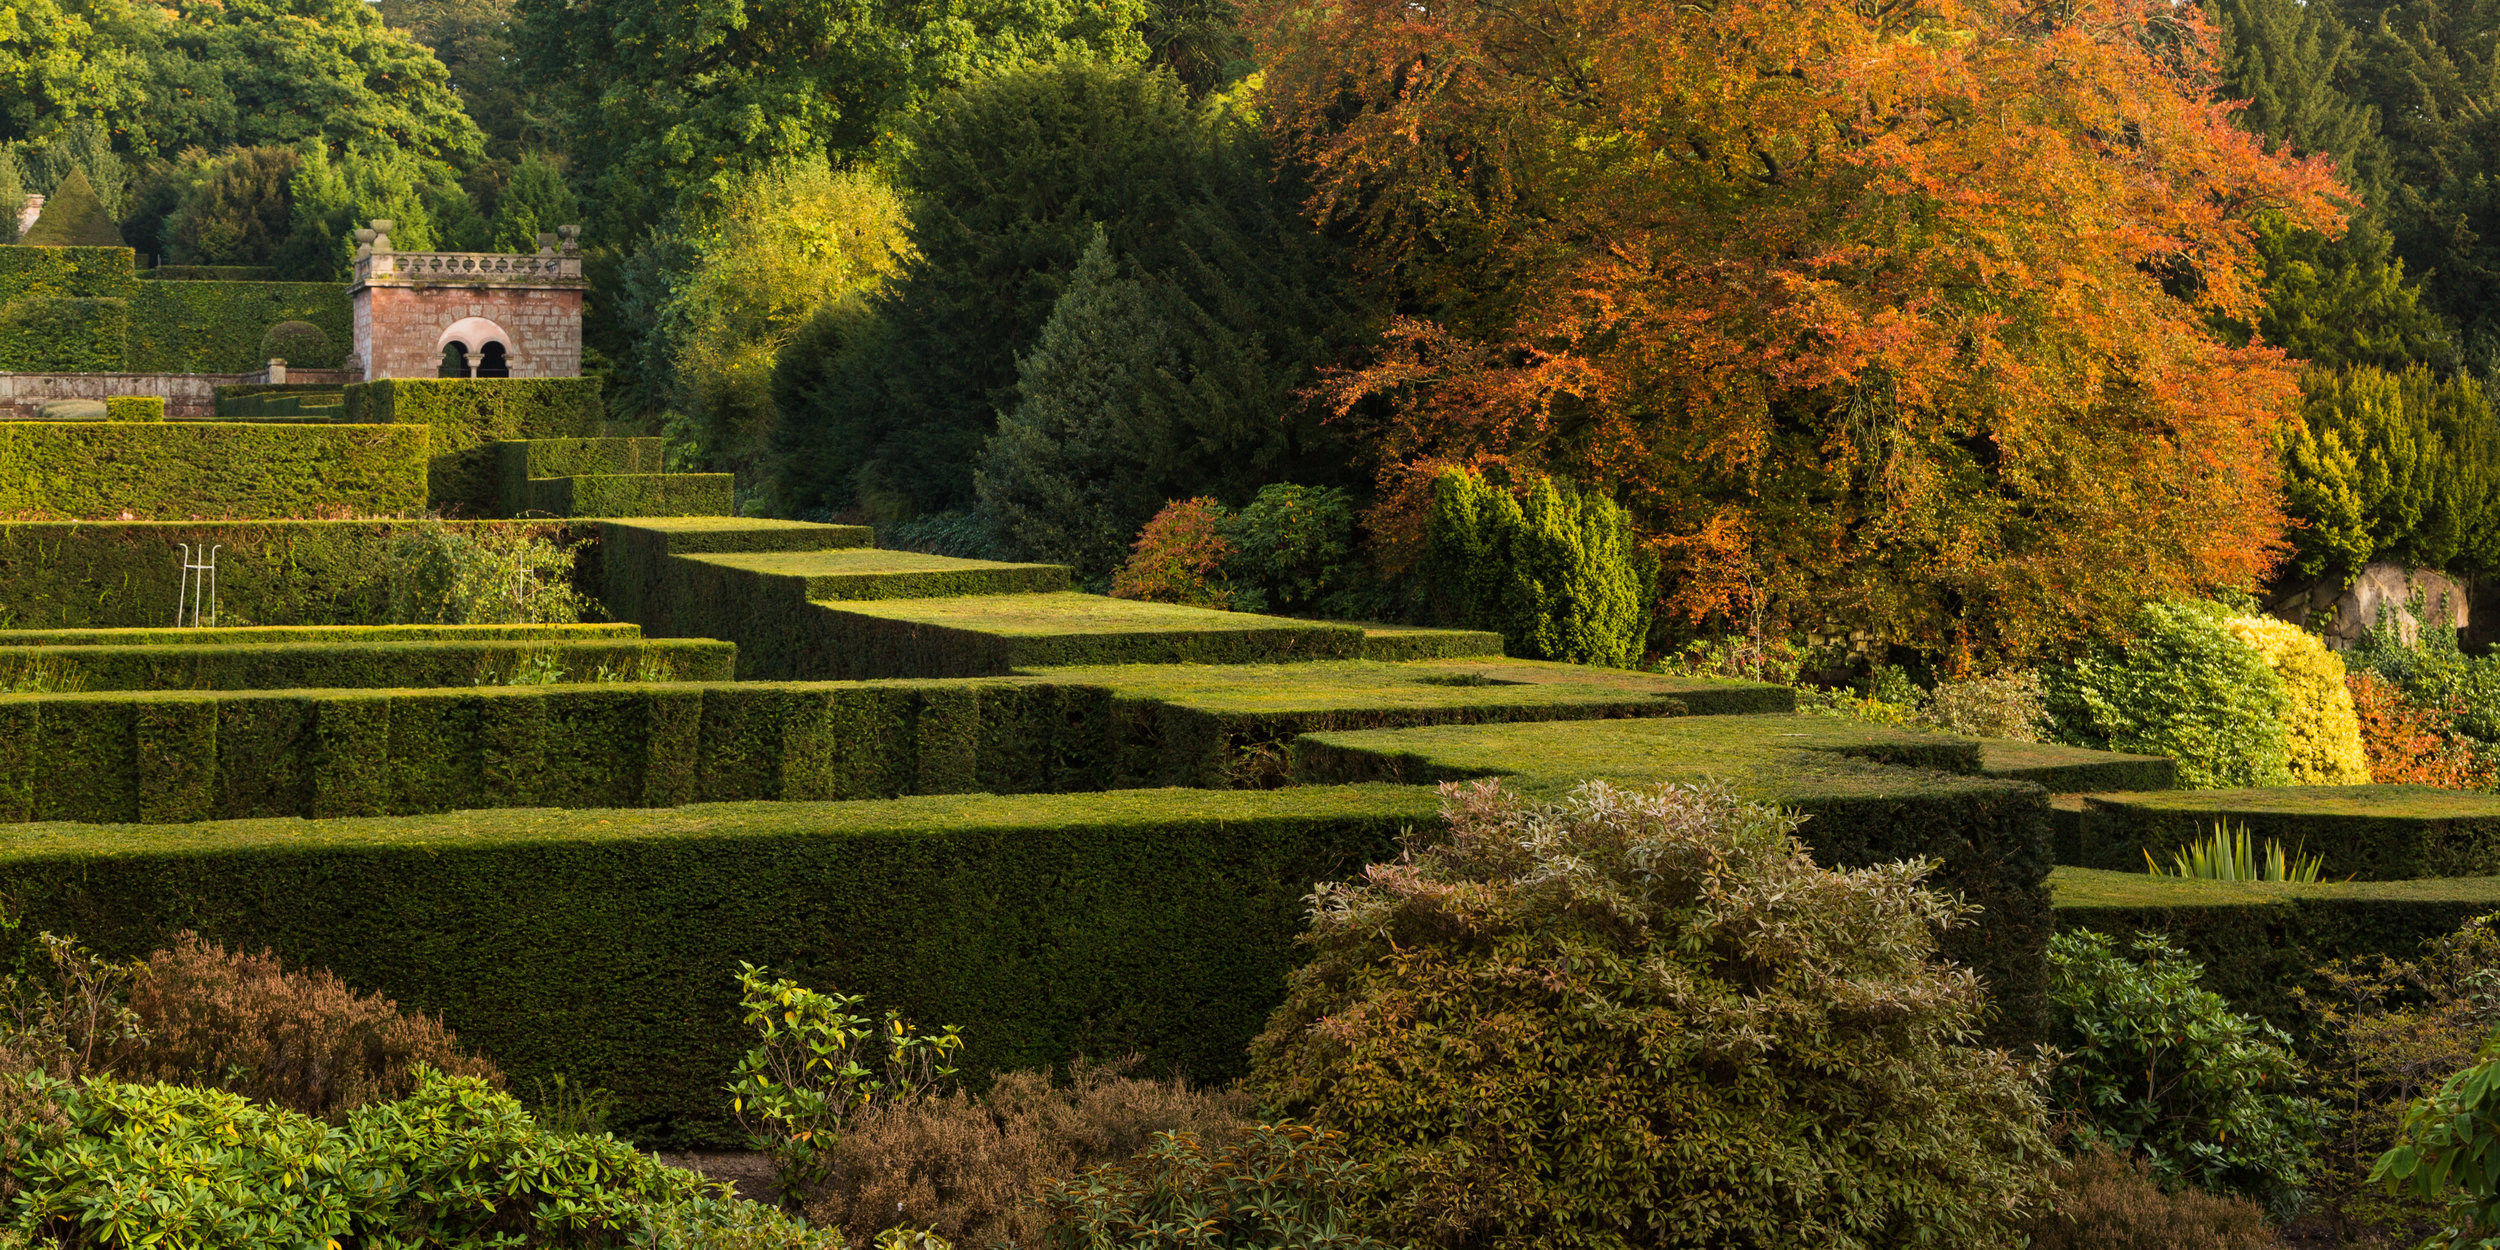 Yew Hedge Parterres and Autumn Trees at Biddulph Grange. Image: Chris Denning/ Verve Garden Design.